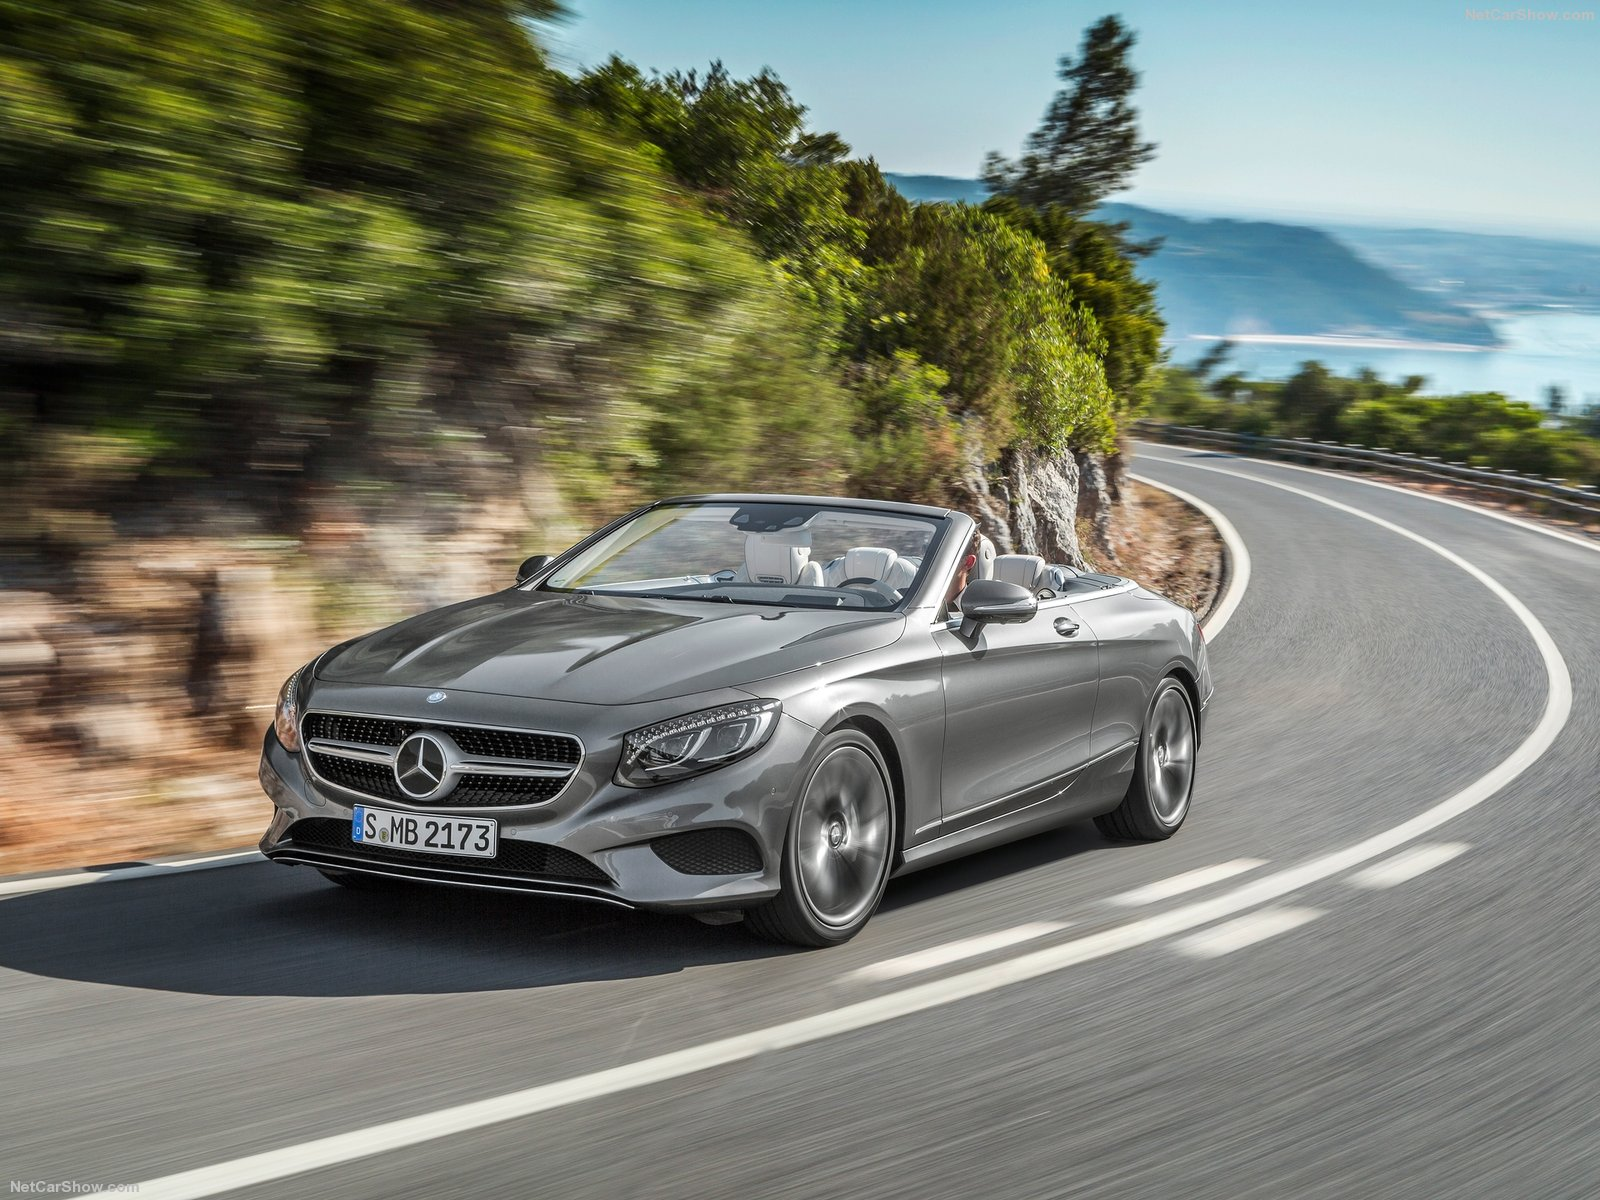 Mercedes-Benz S-Class Cabriolet photo 149701